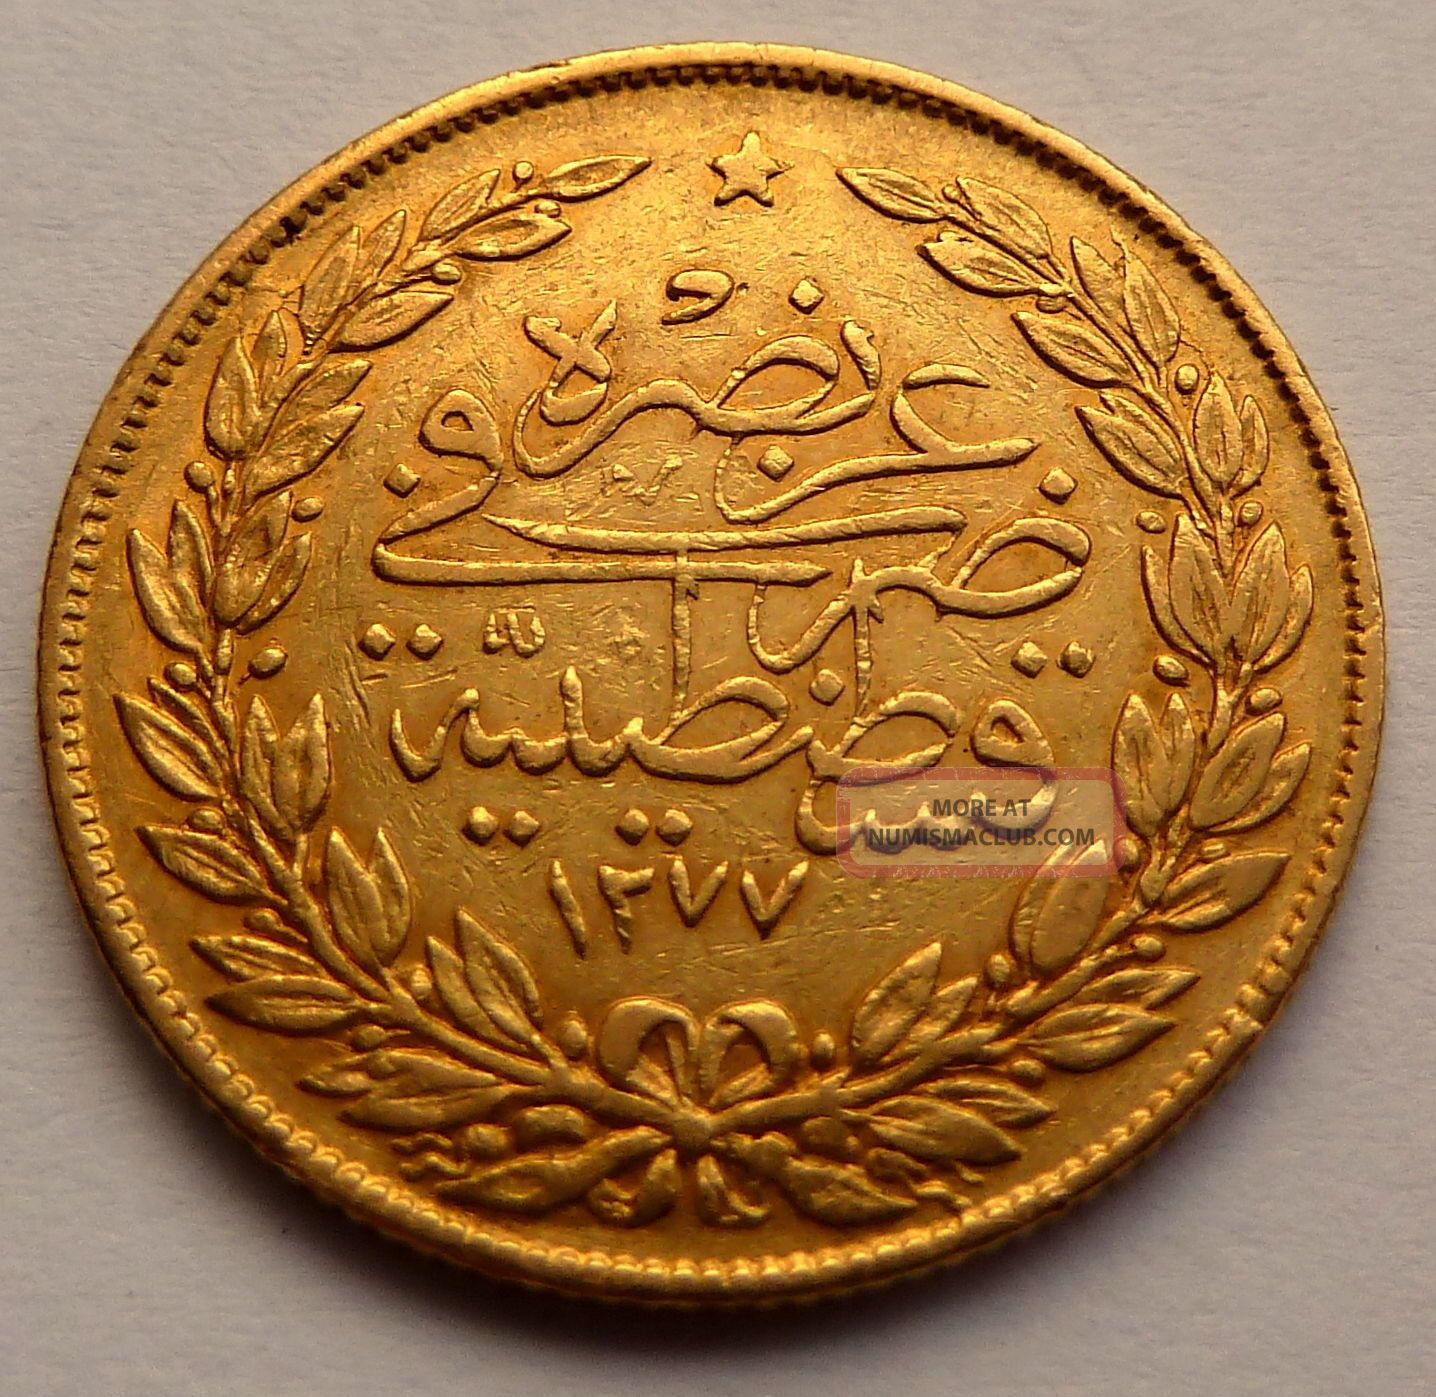 Turkey Ottoman Empire 100 Kurush 1277 7 1867 7 2g 0